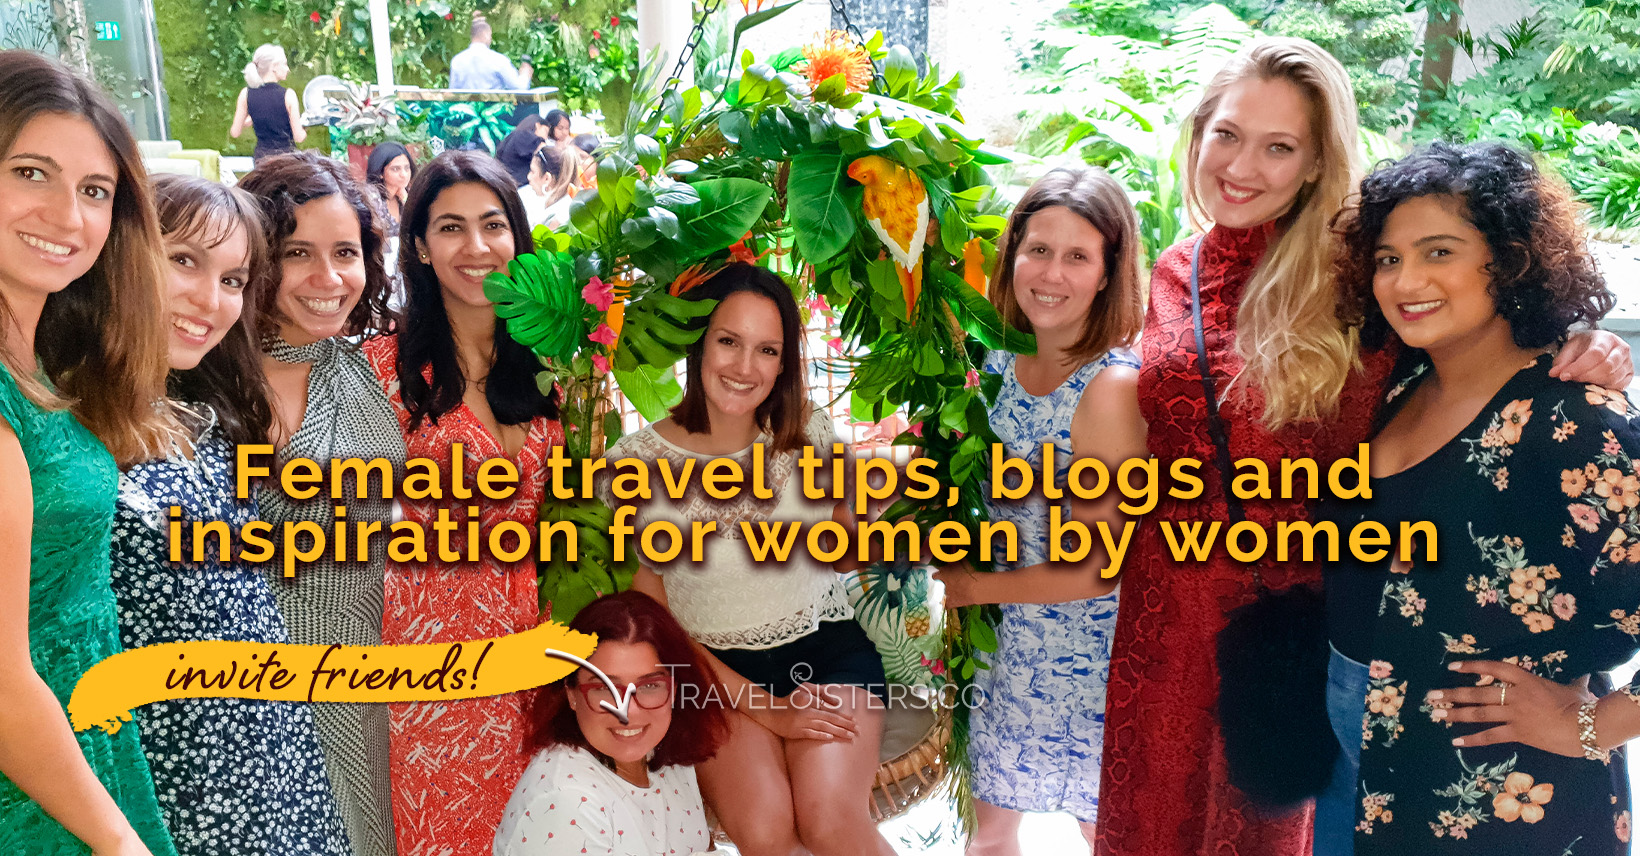 TravelSisters.co - The Female Only Travel App